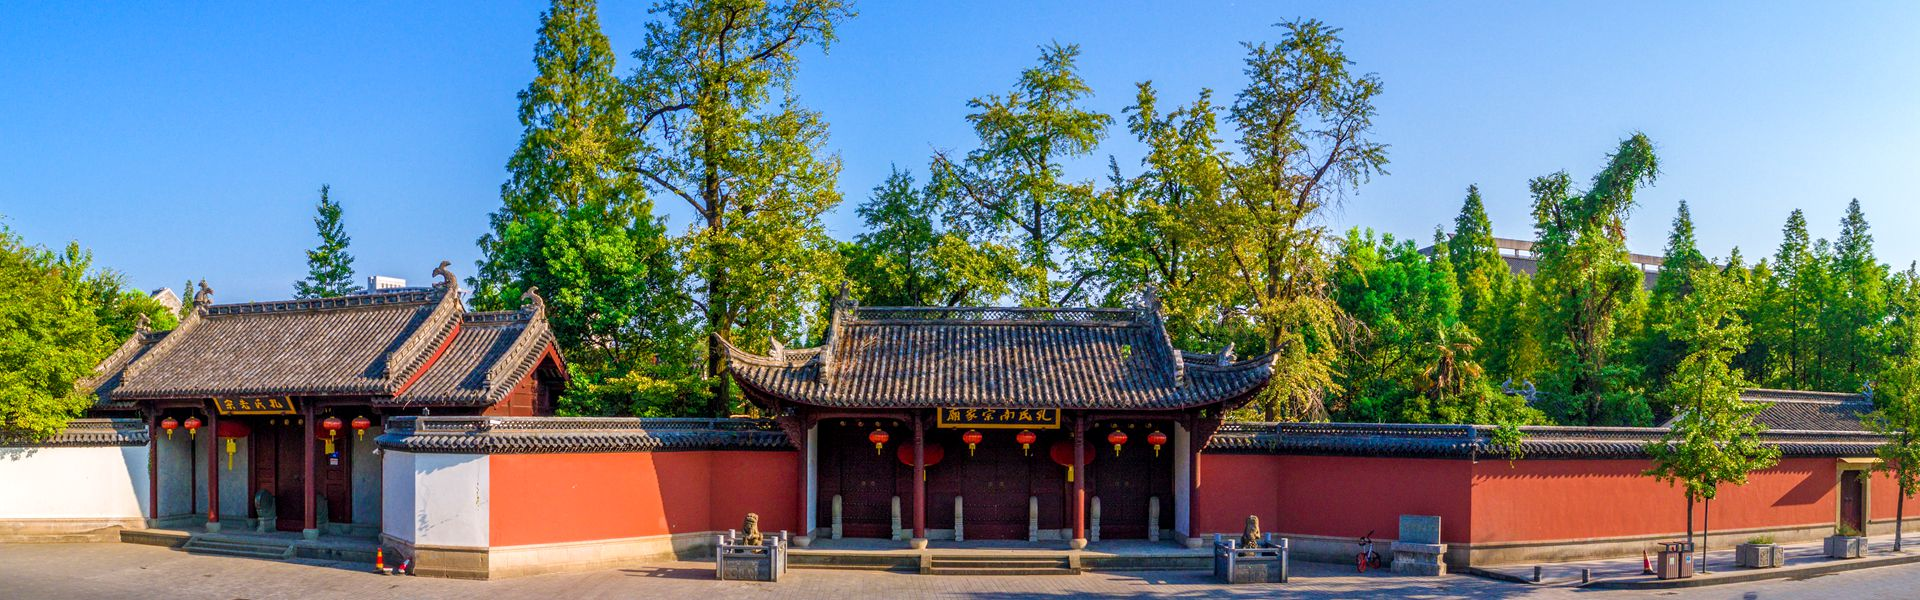 Temple of Southern Confucianism